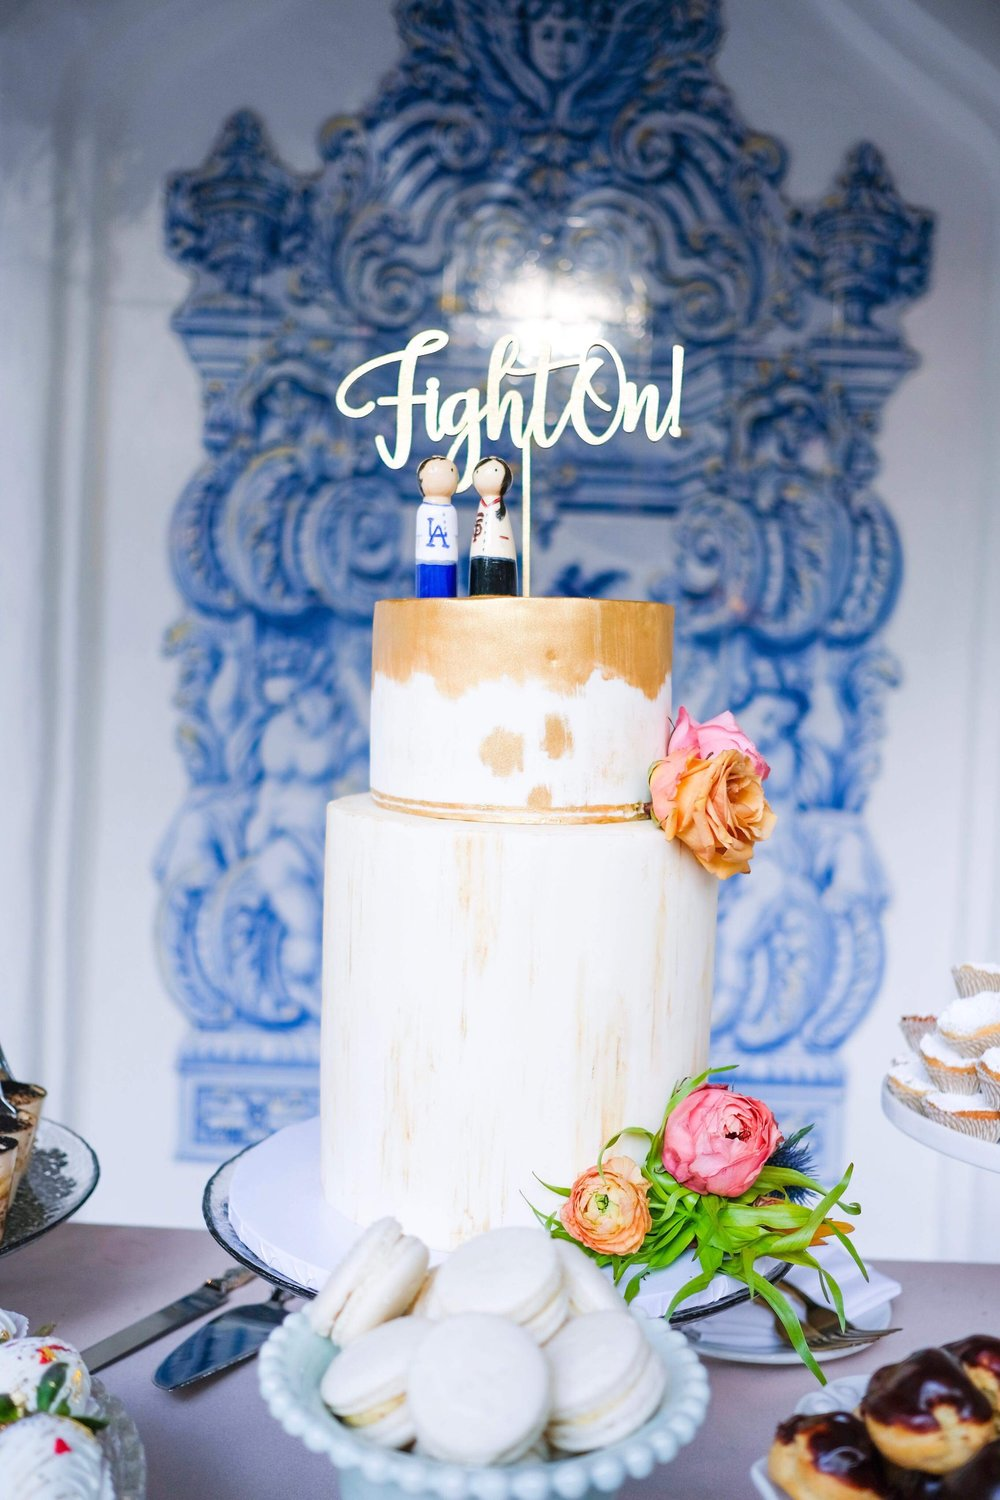 Gold fondant Fight On USC wedding cake, Rancho Las Lomas